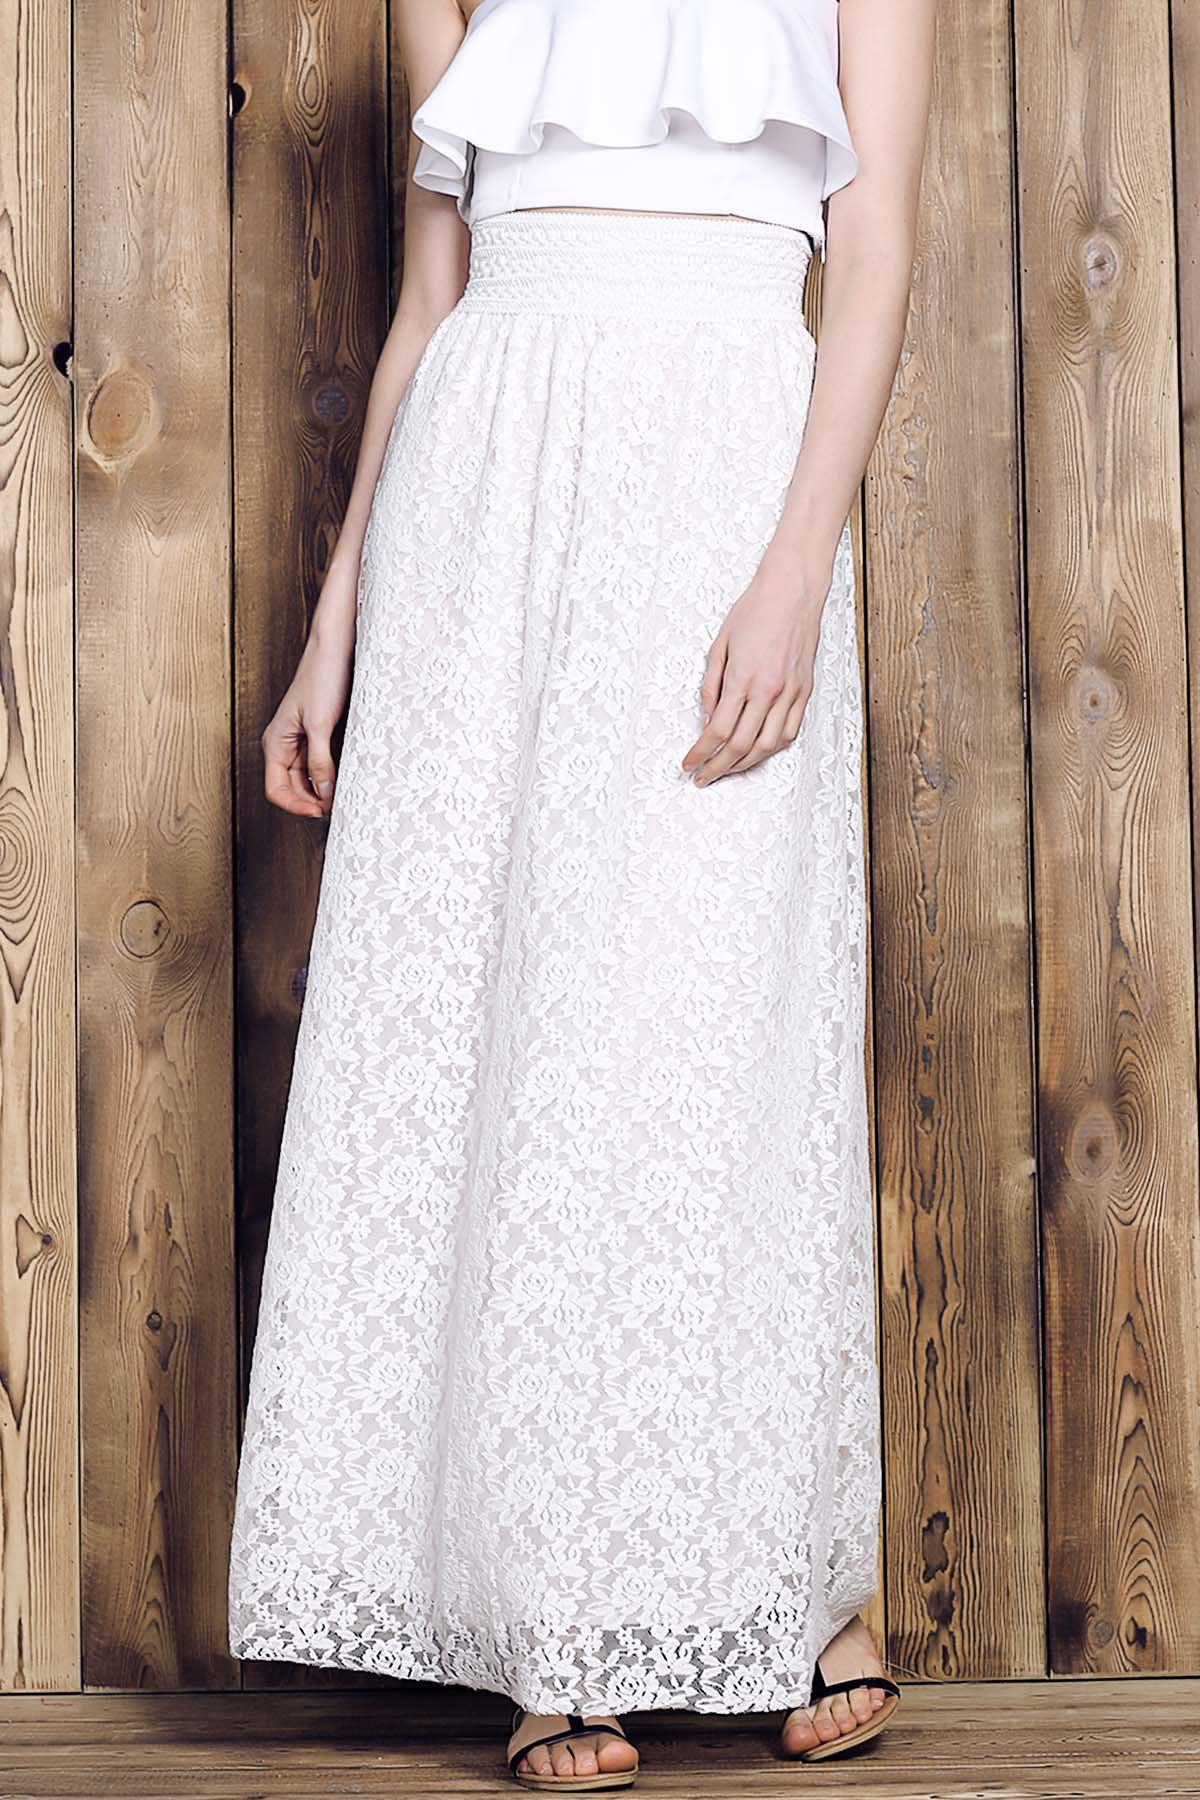 Elegant Women's High-Waisted Lace Maxi Skirt - WHITE M